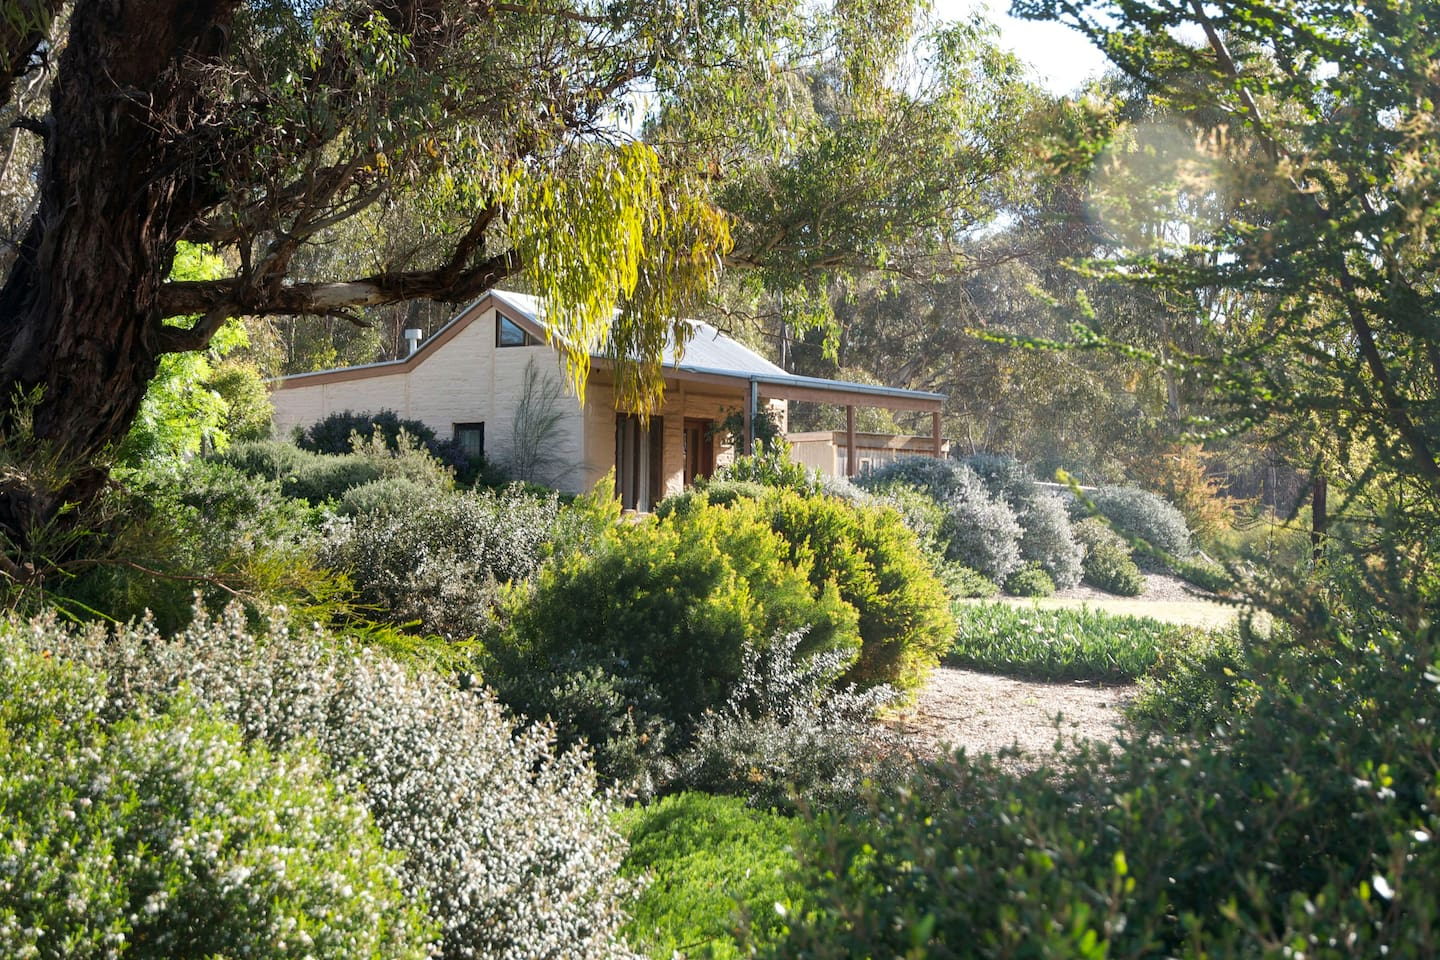 Self-contained off-grid mud brick cottage, on bush block backing onto Muckleford State Forest, 10 minutes from Castlemaine, Maldon and Newstead, and 90 minutes from Melbourne..